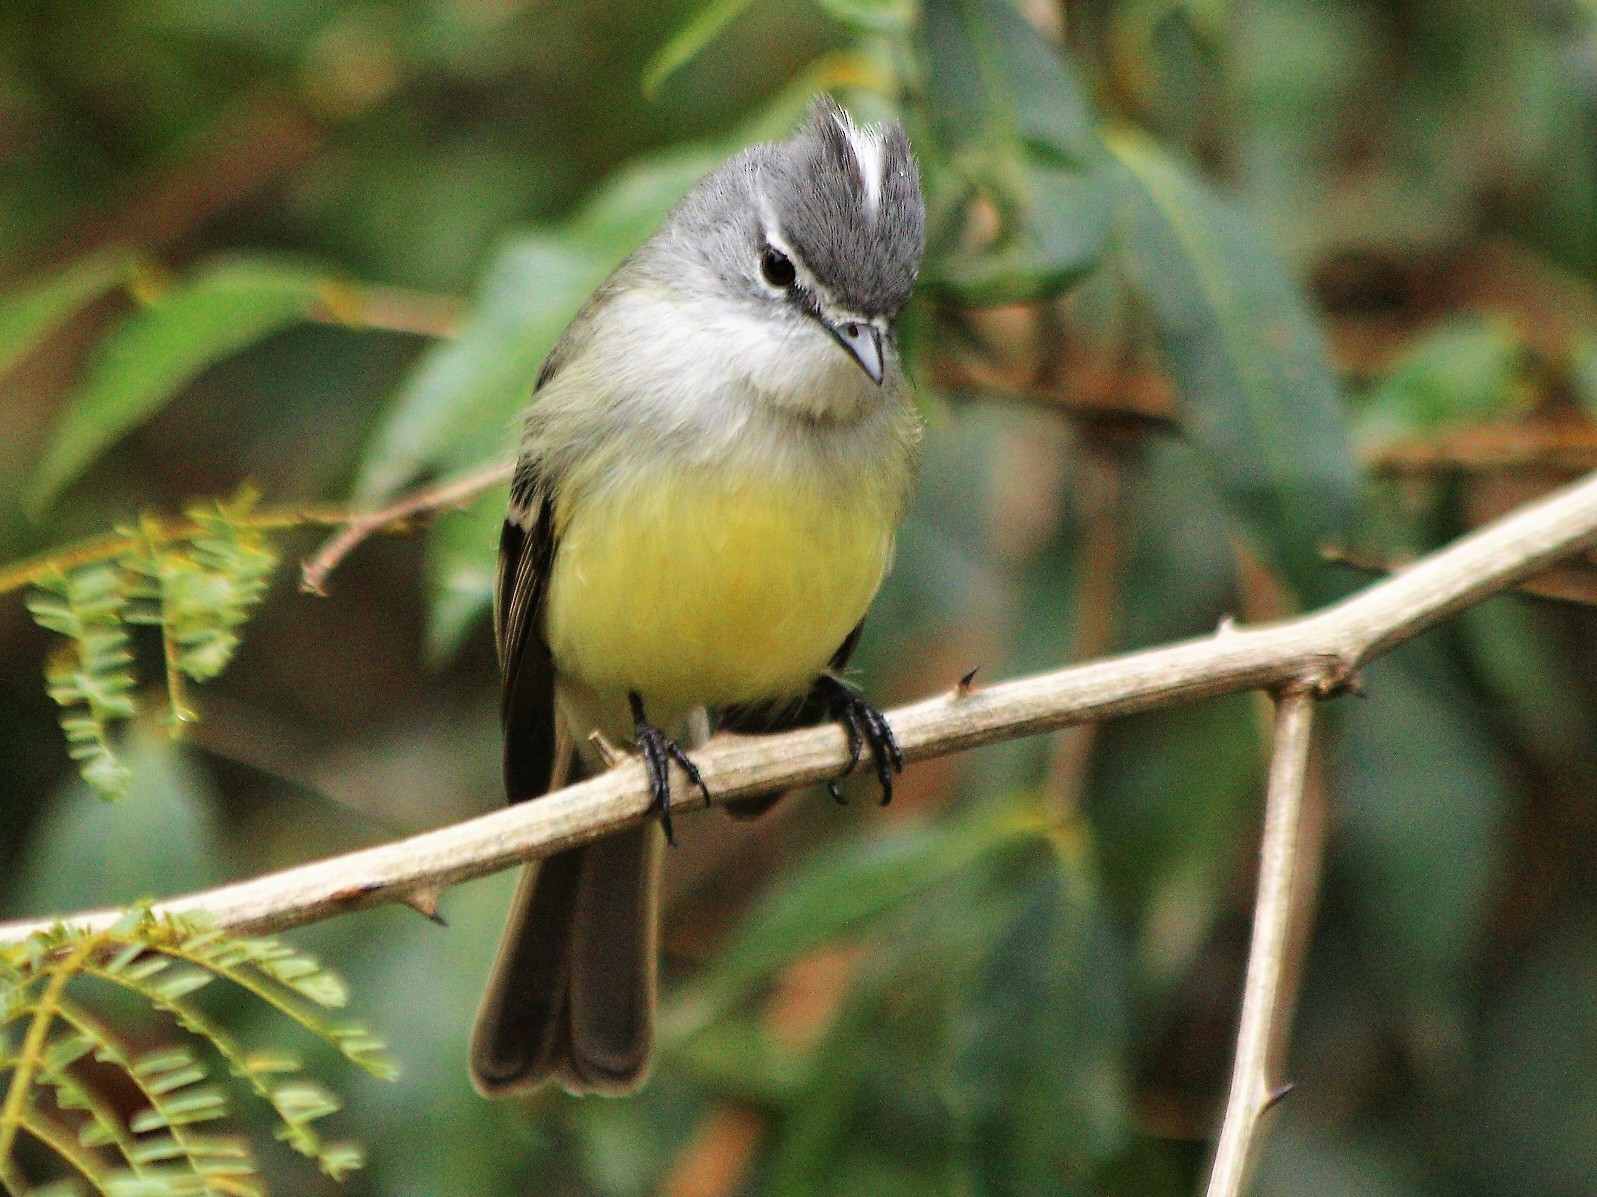 White-crested Tyrannulet - CLAUDIO JORGE FILHO